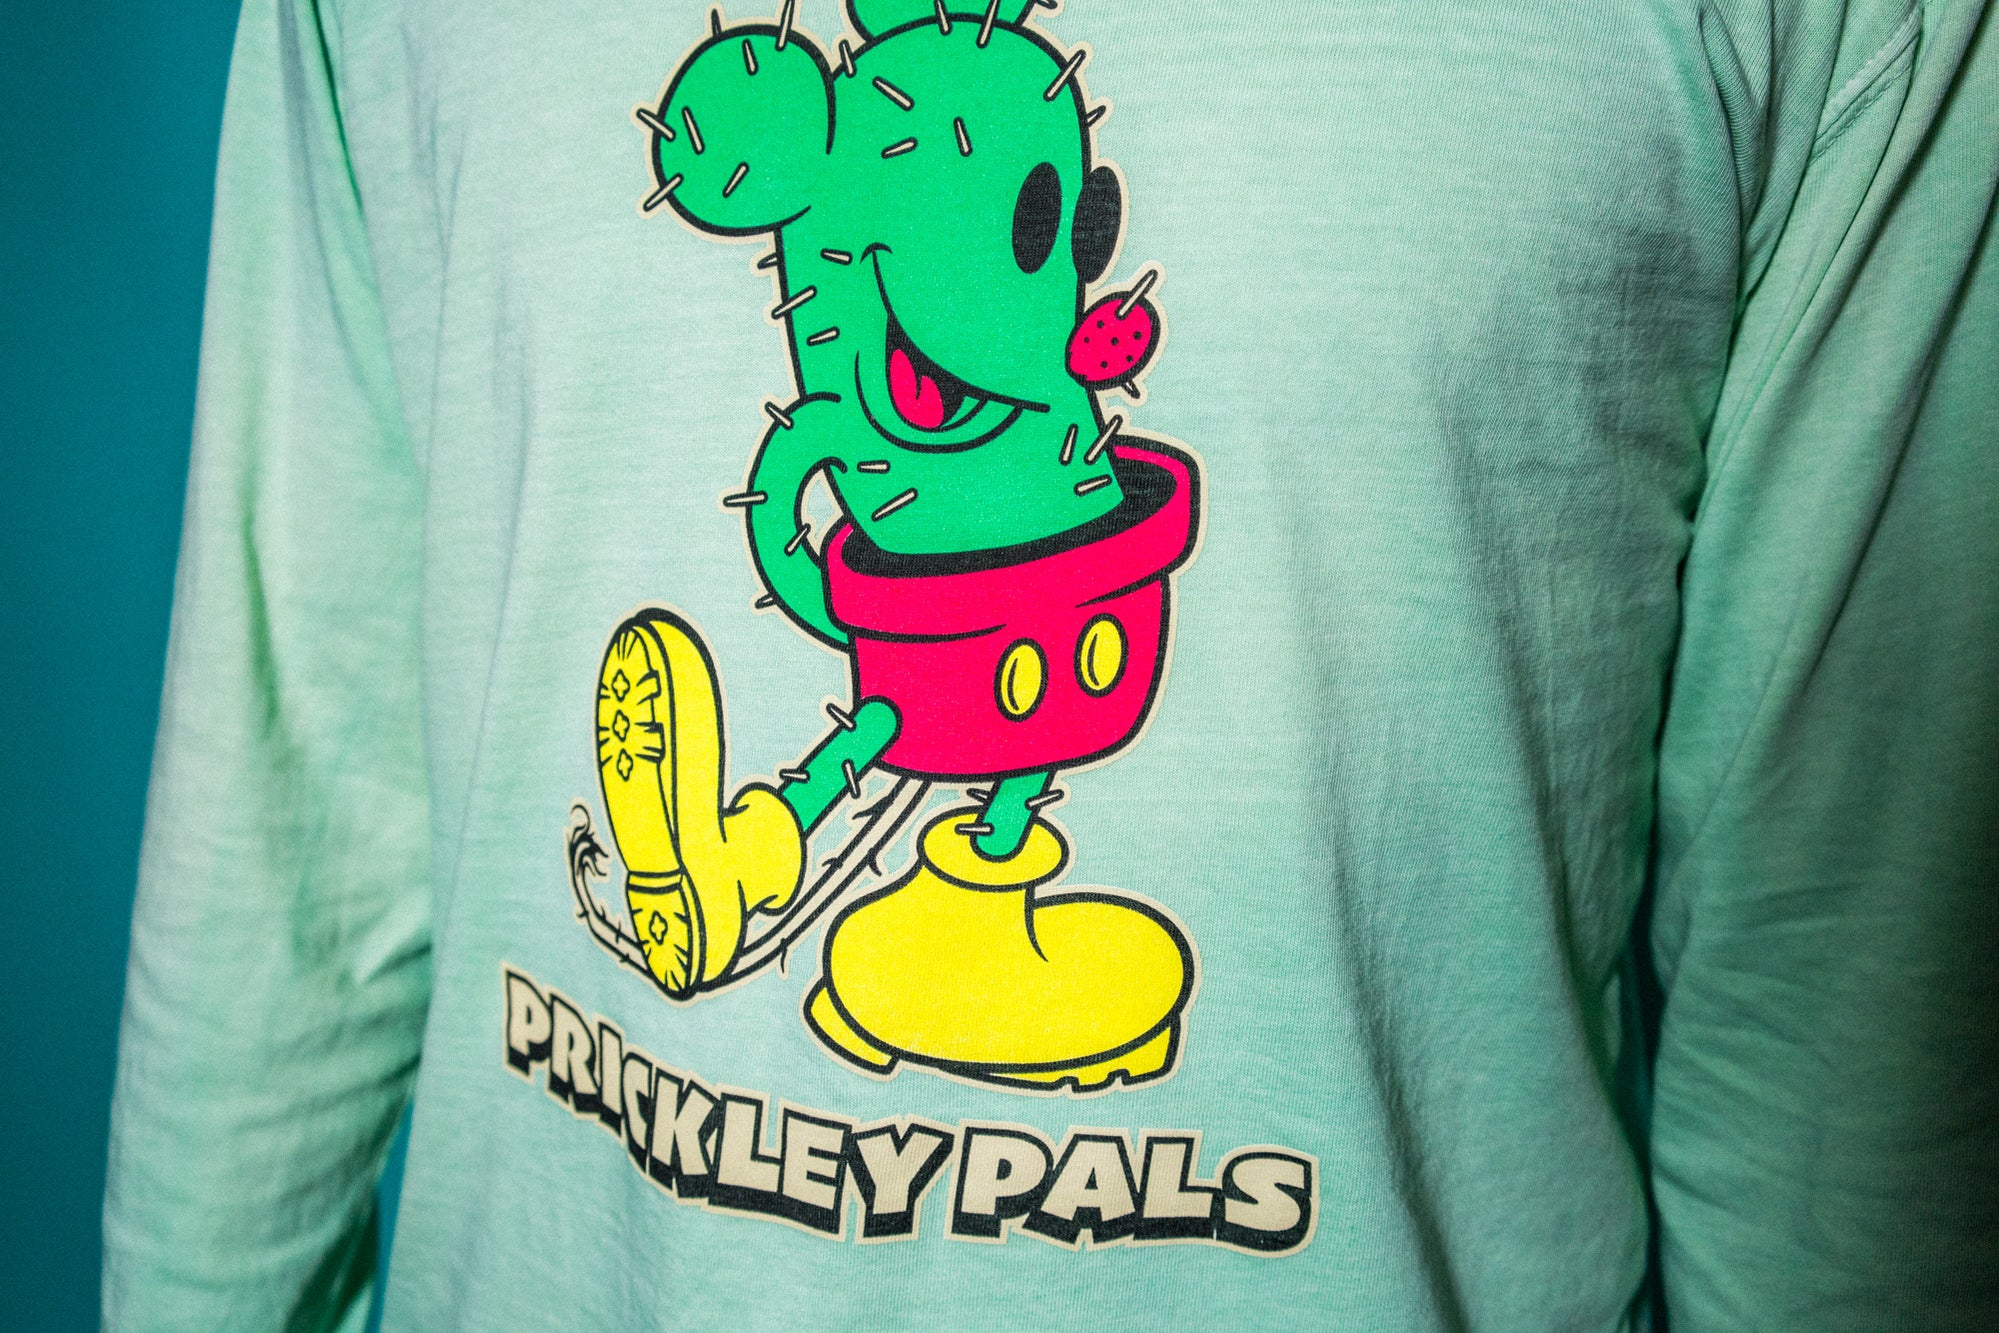 Prickley Pals Long Sleeve Heavyweight